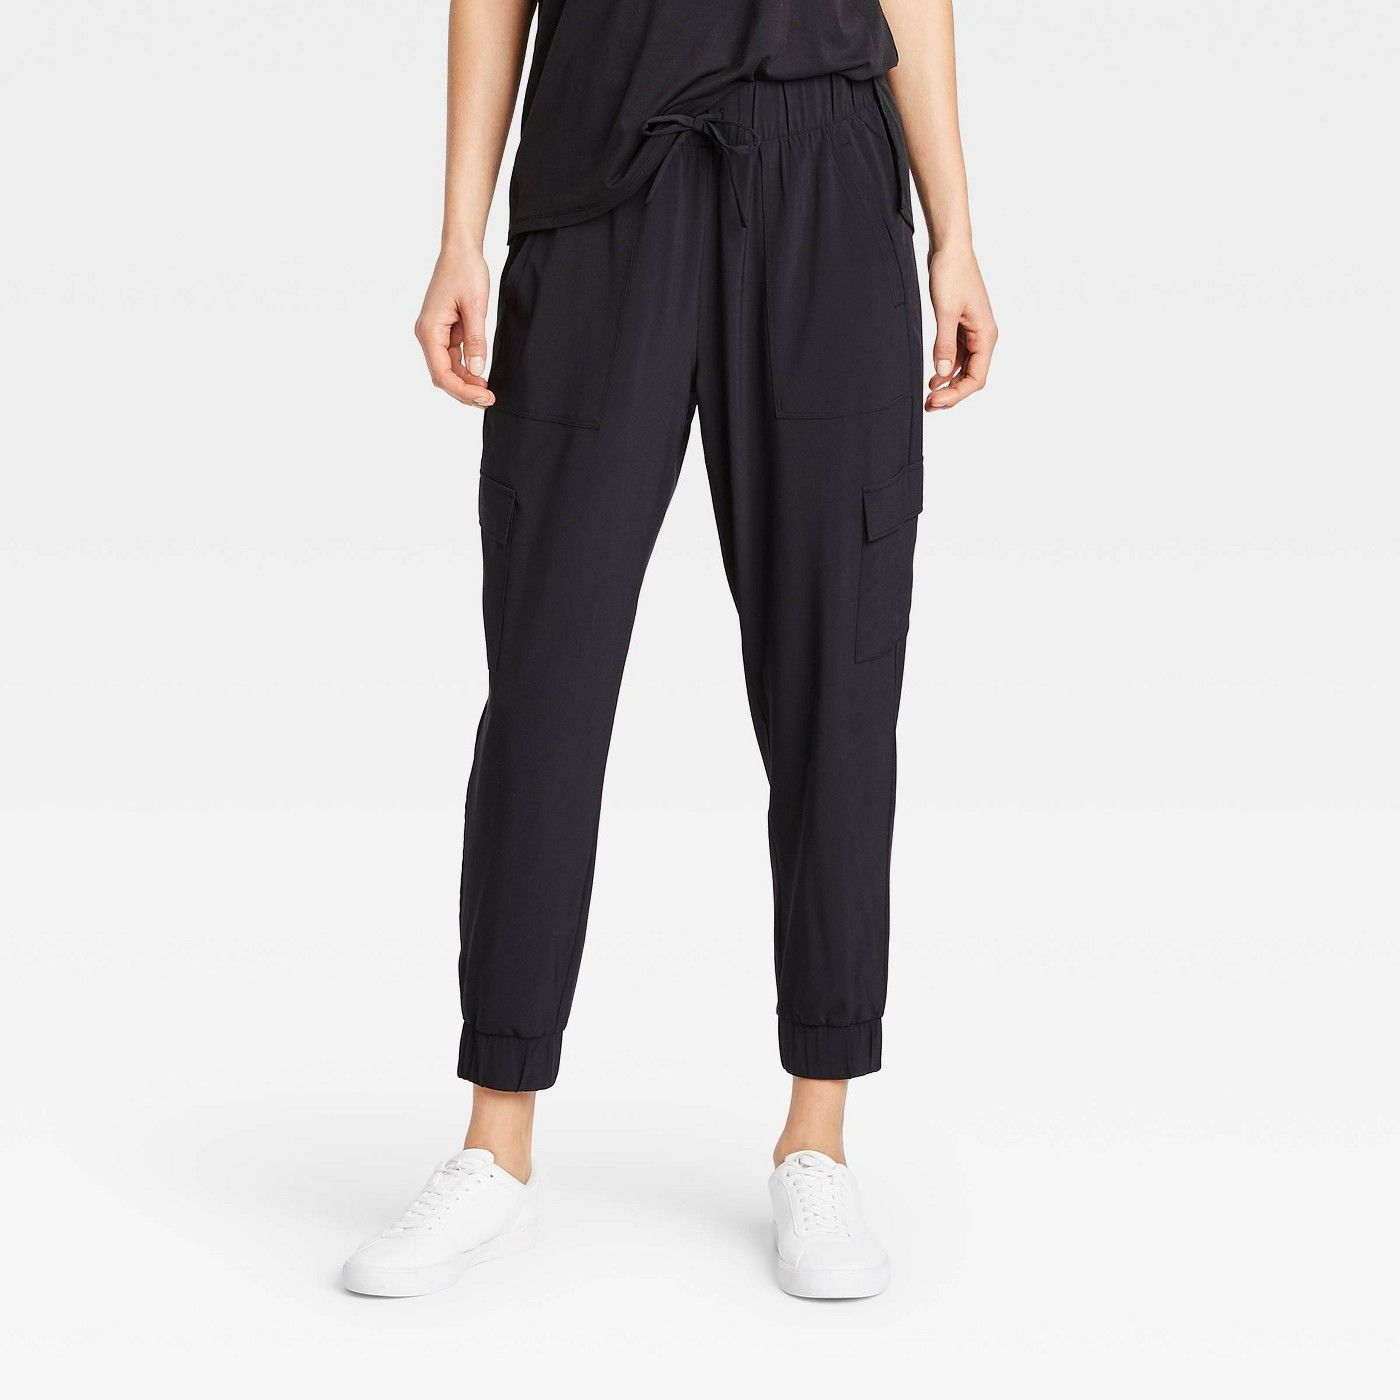 Women's Stretch Woven Cargo Joggers All in Motion?